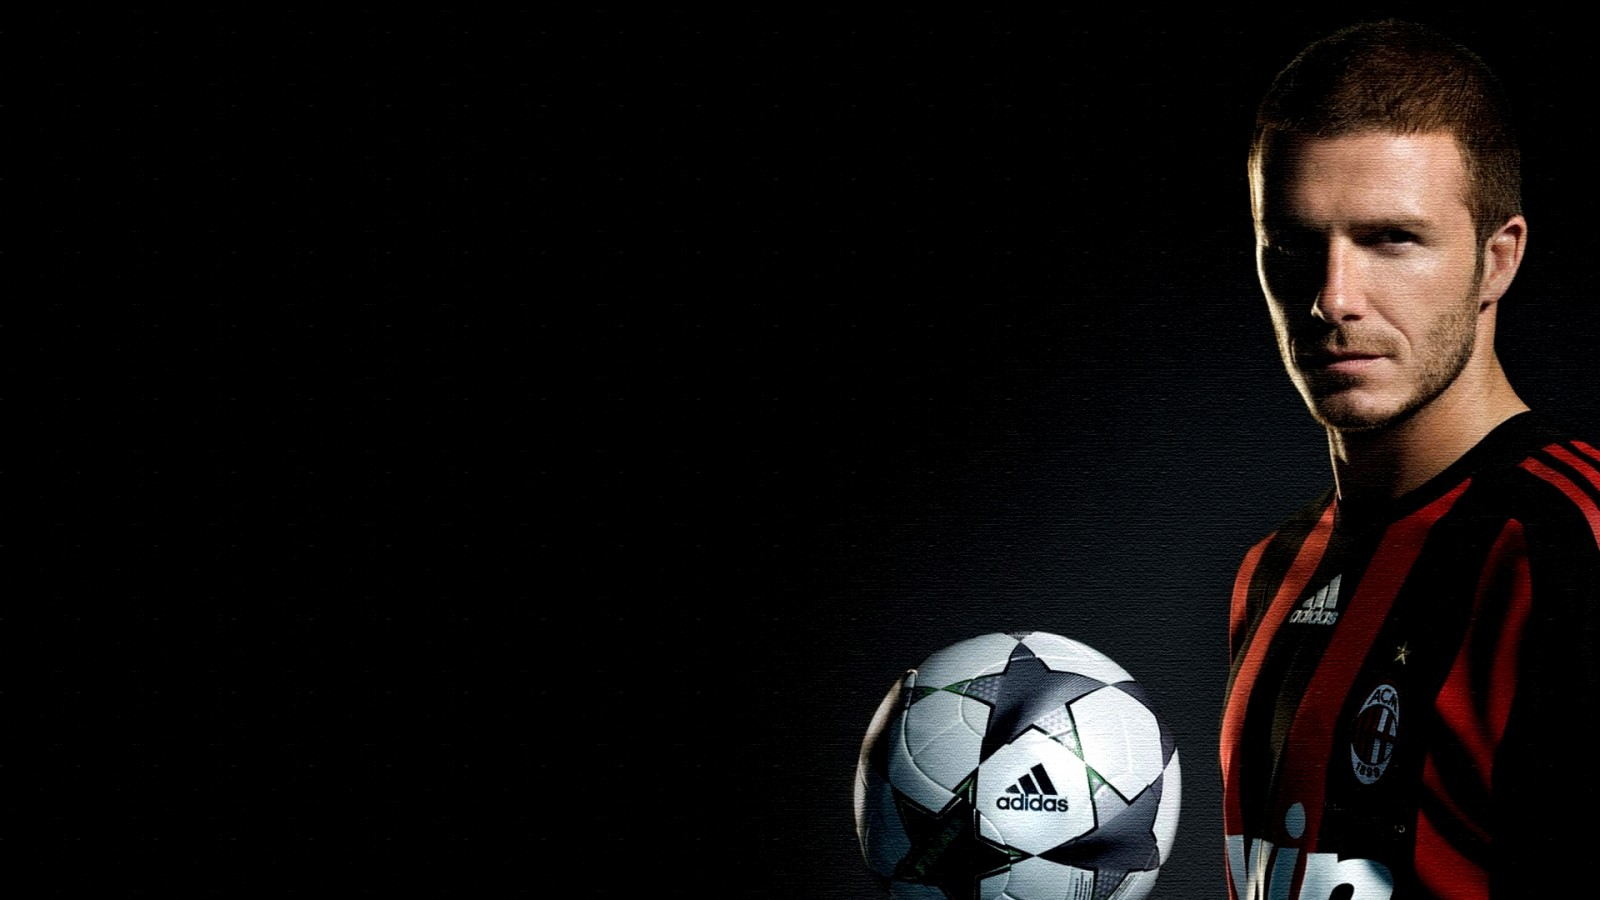 David Beckham Wallpapers High Resolution and Quality Download 1600x900